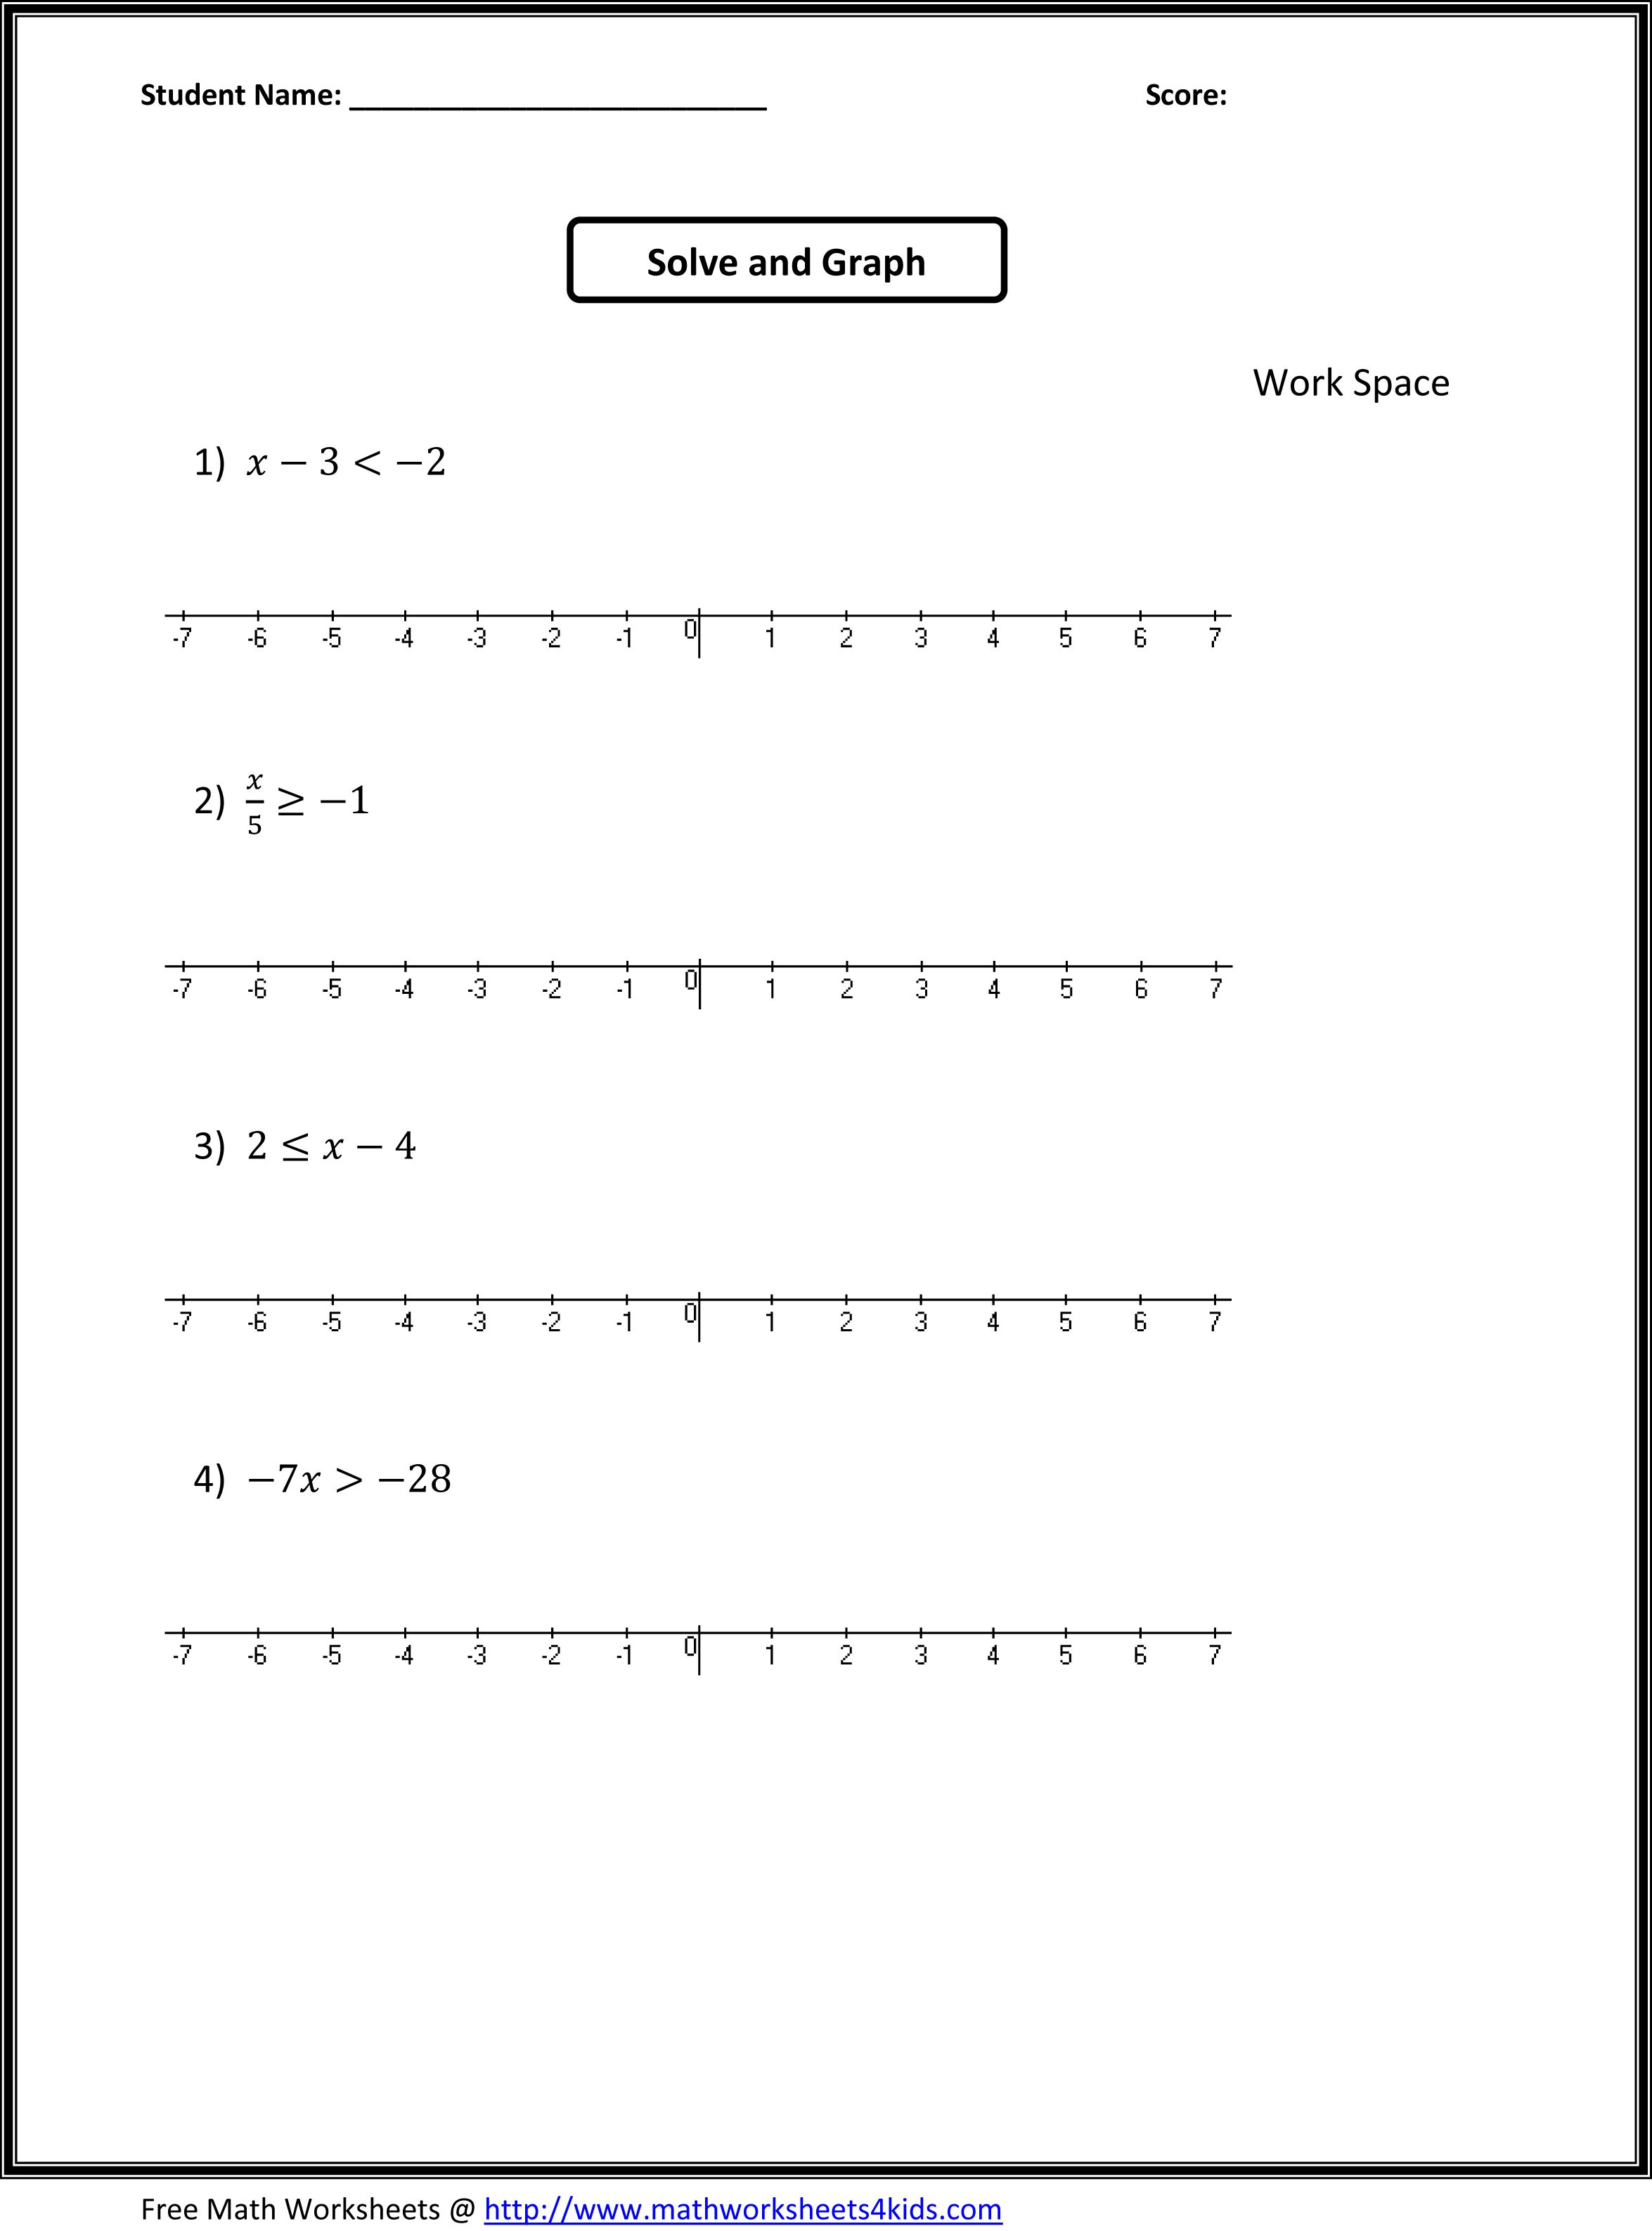 7th Grade Algebra Worksheets 7th Grade Math Worksheets – Graphing Math Worksheets